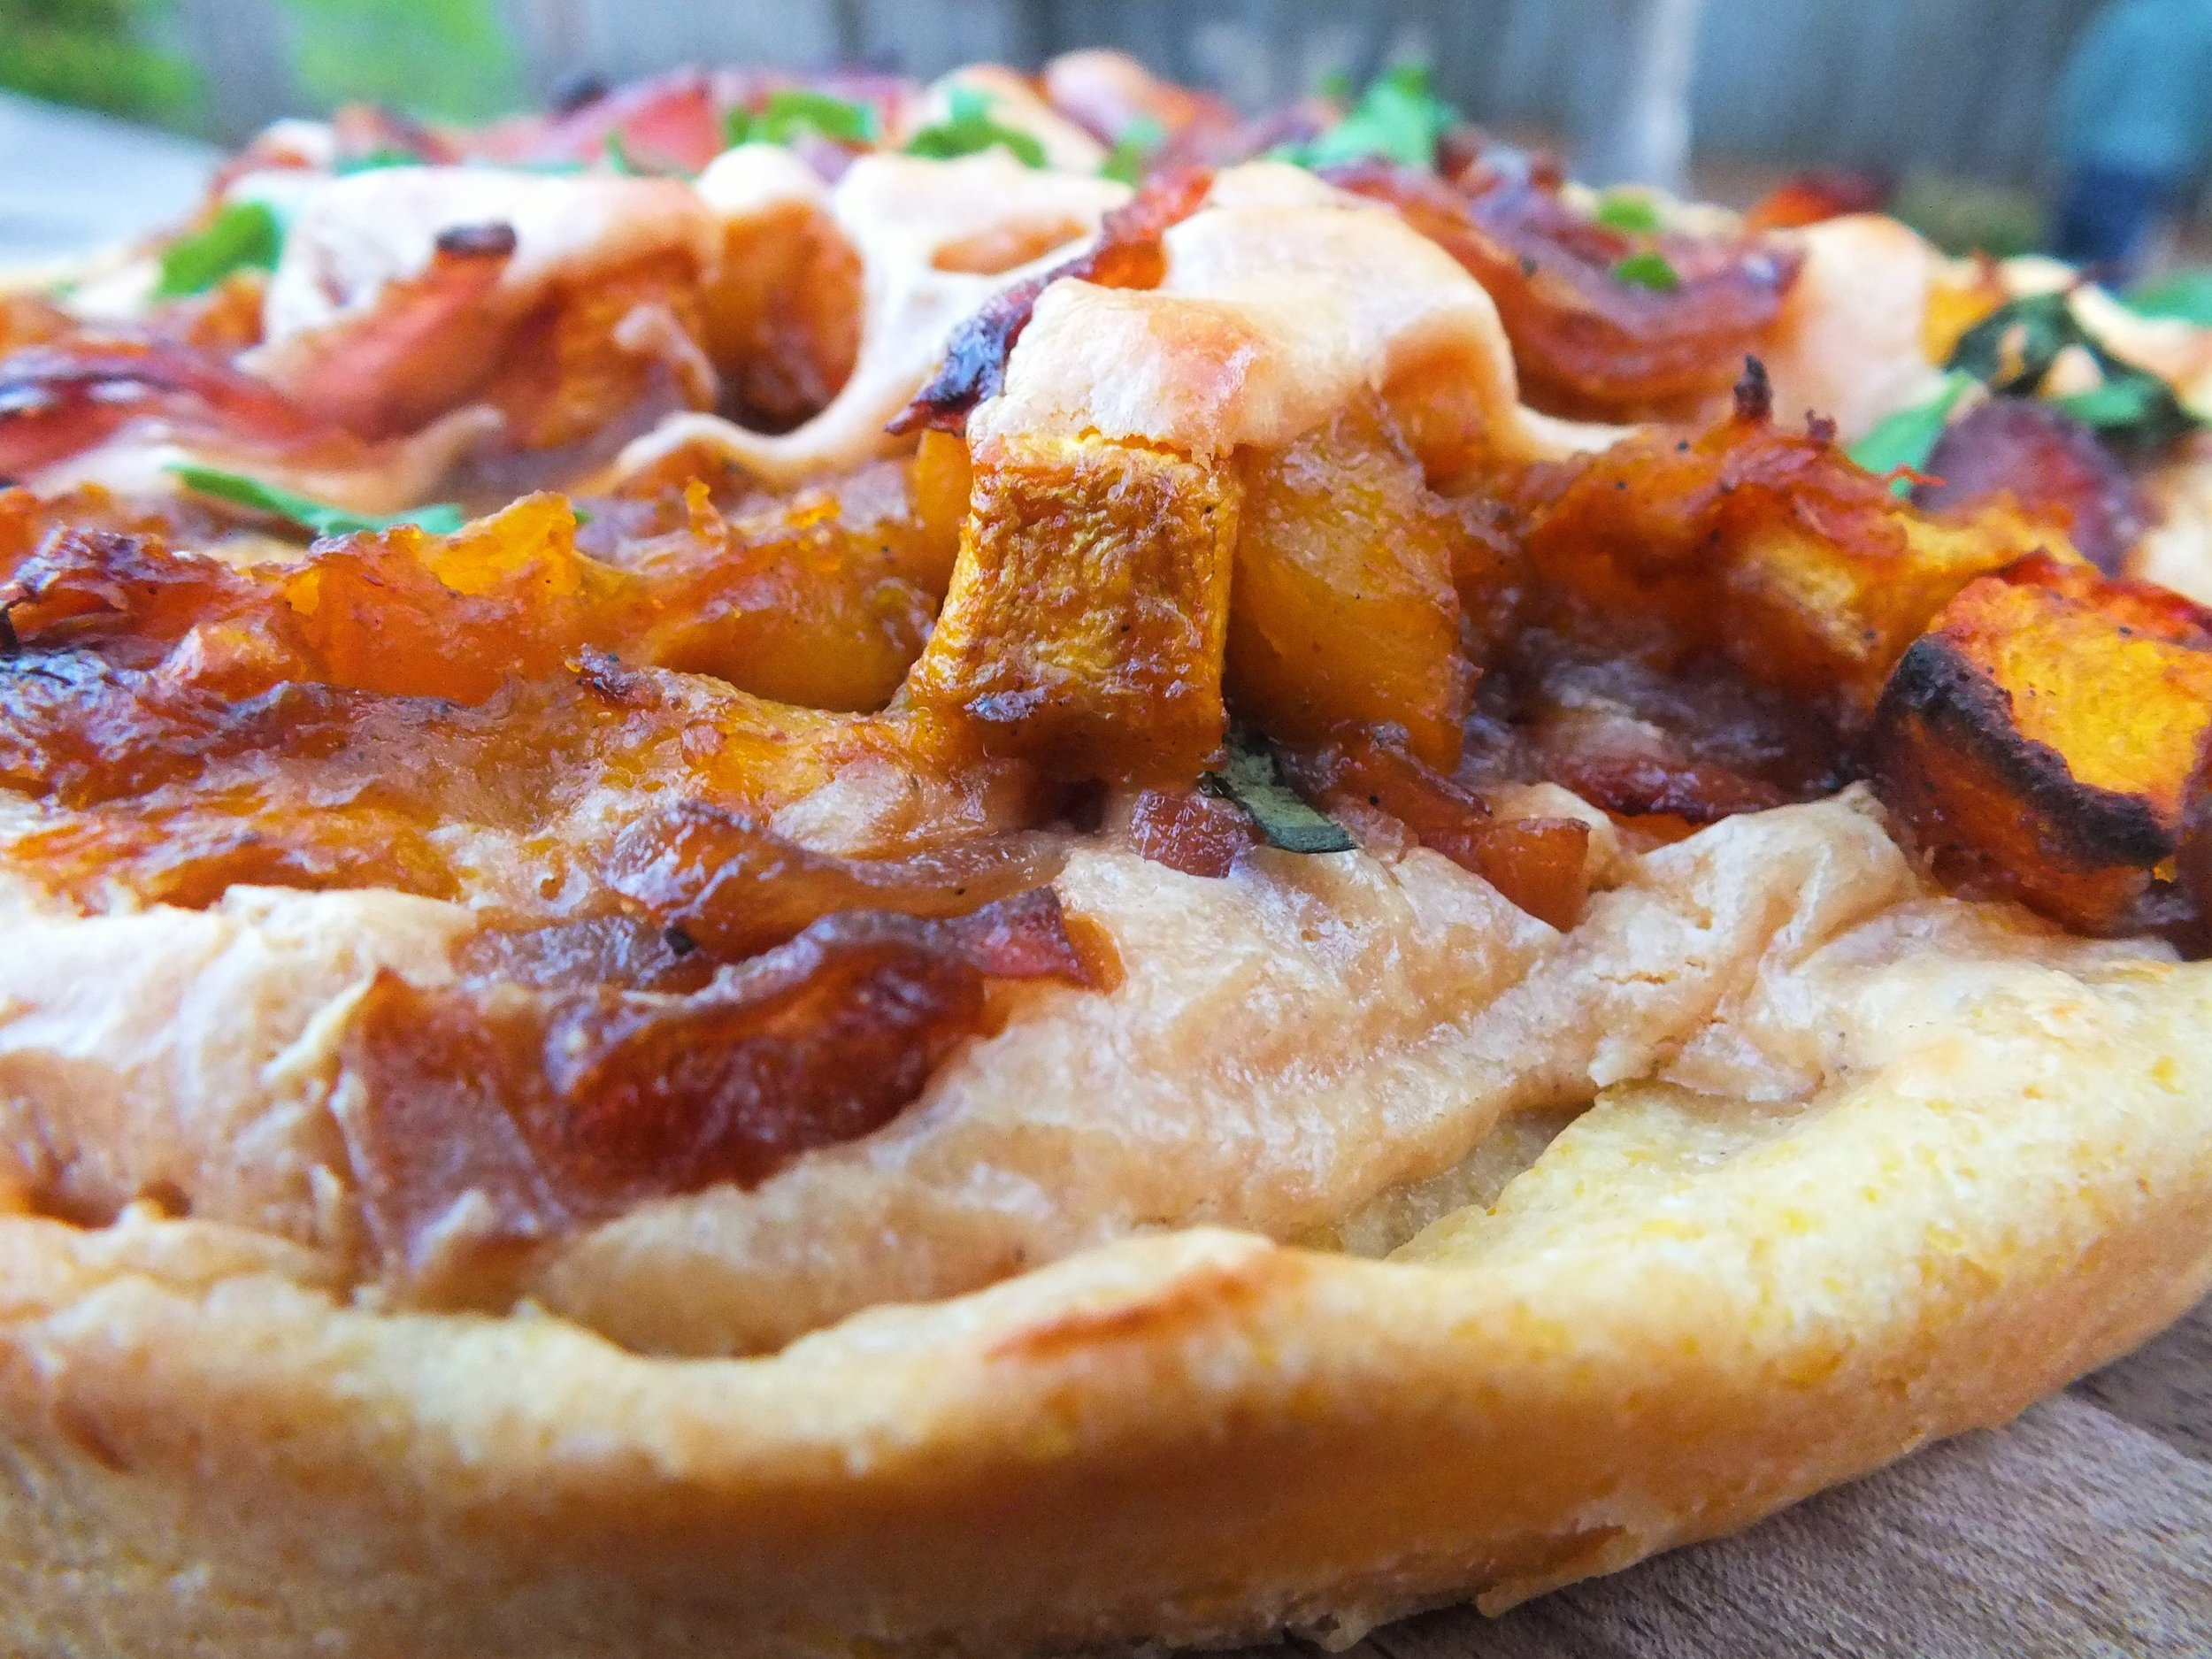 butternut squash and caramelized red onion pizza